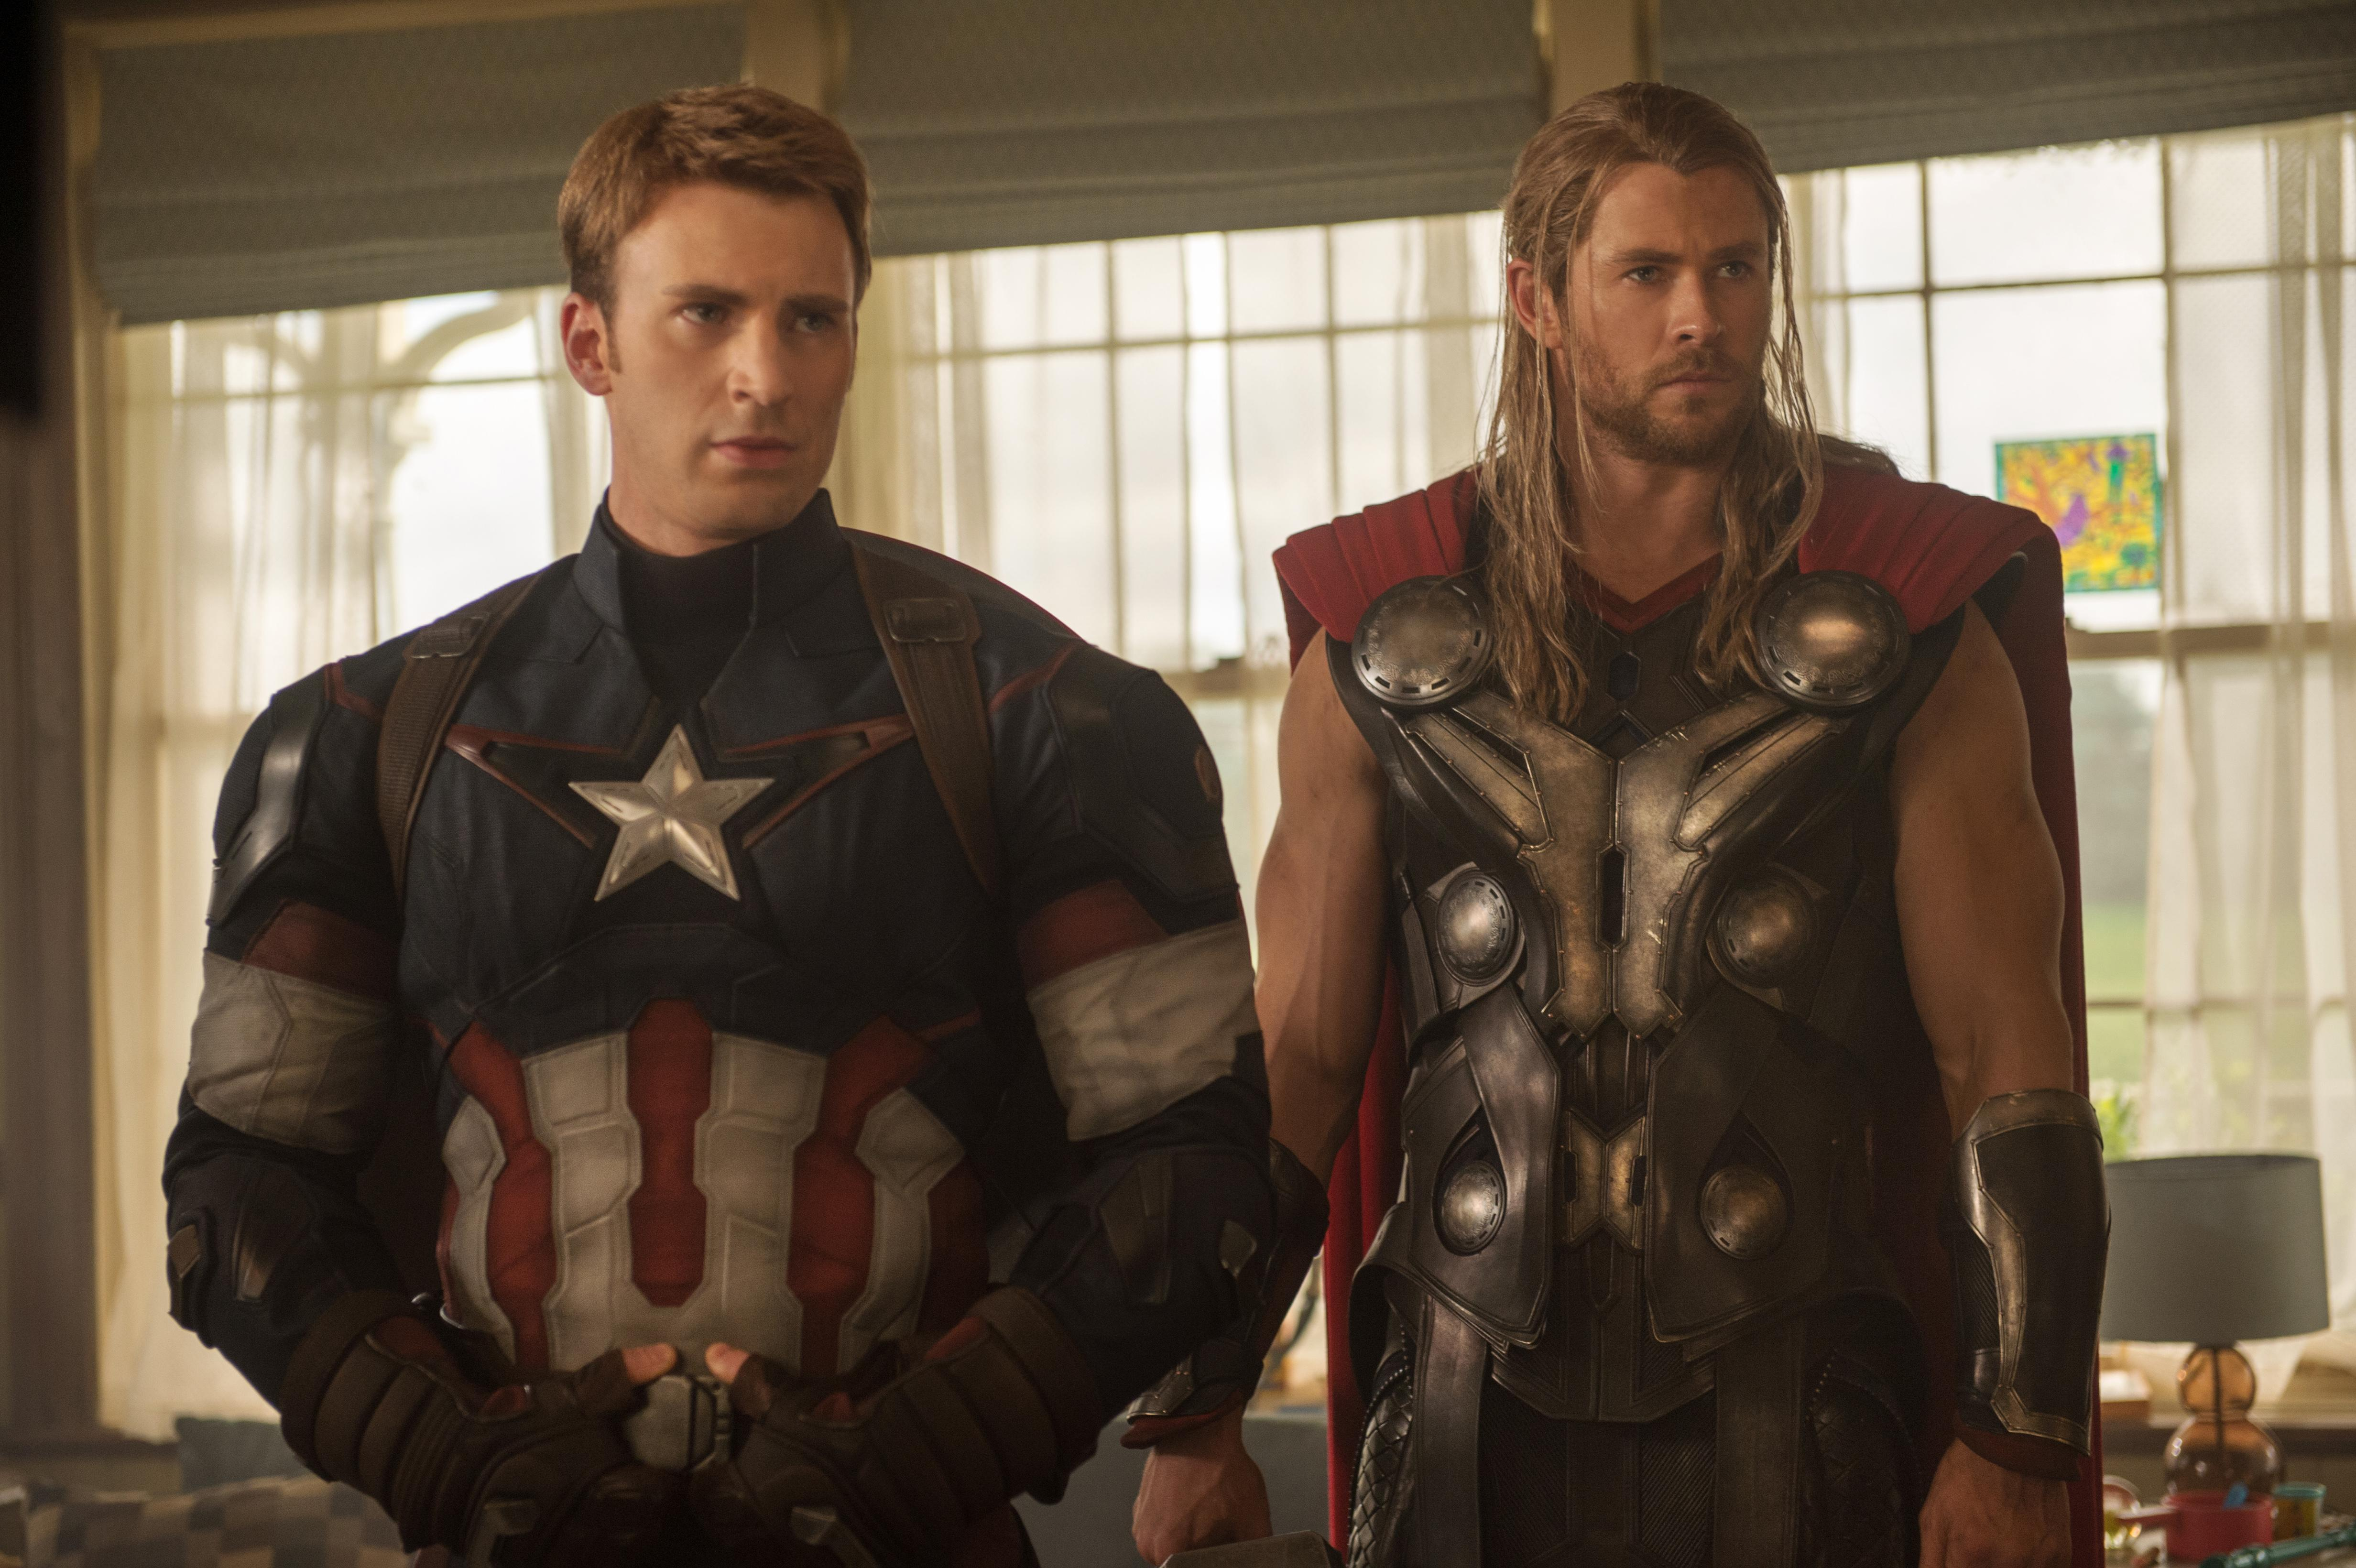 'Avengers: Age Of Ultron' Takes Overseas Cume To $340M; Goes Global With $425M